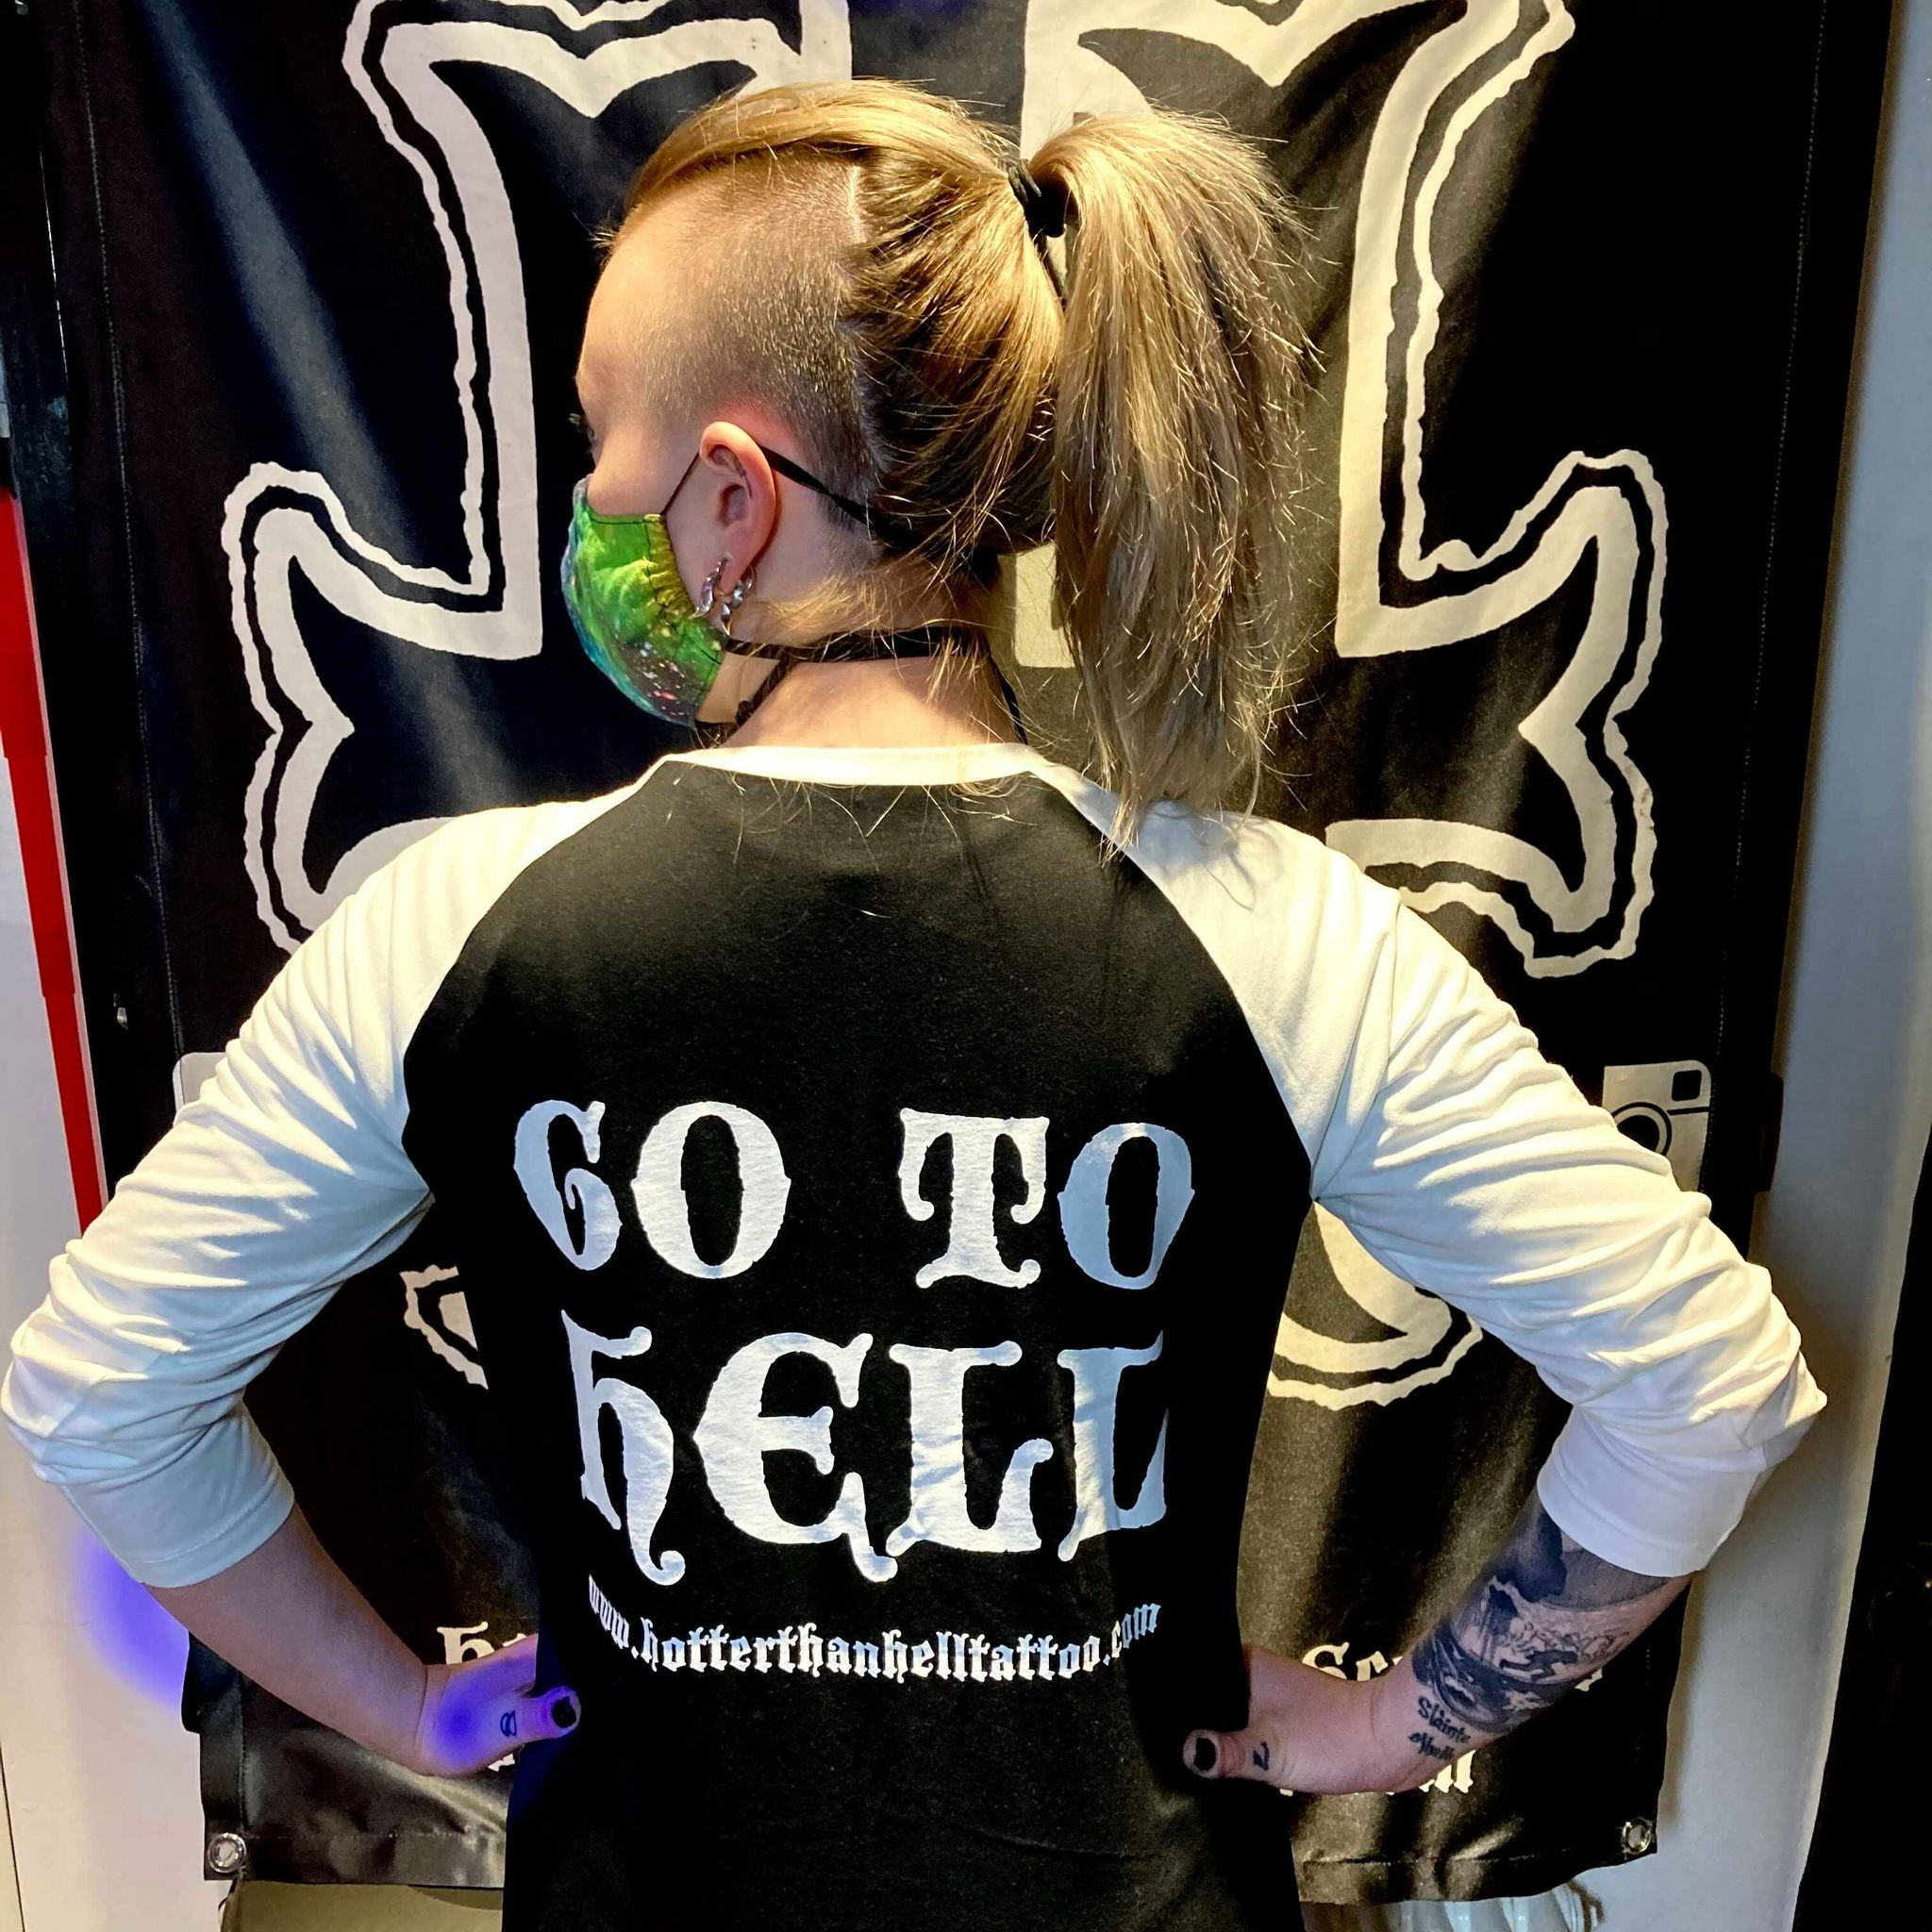 HTHT 'GO TO HELL' Baseball Shirt